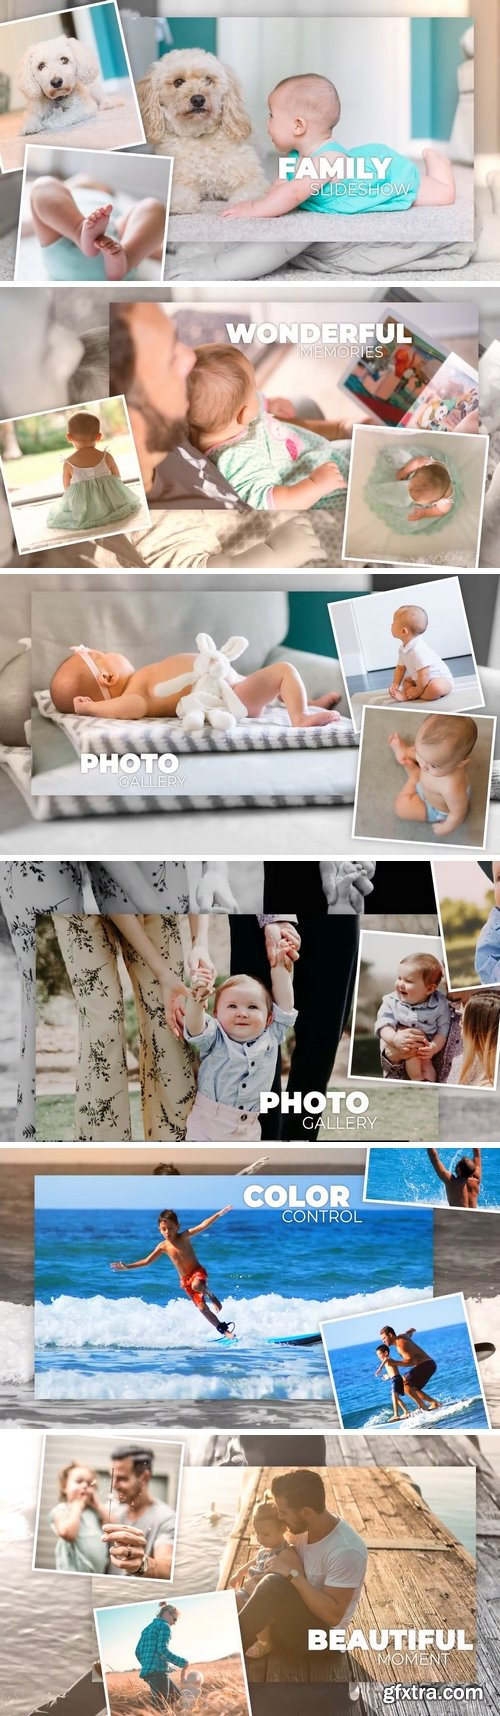 MA -  Family Slideshow After Effects Templates 150858